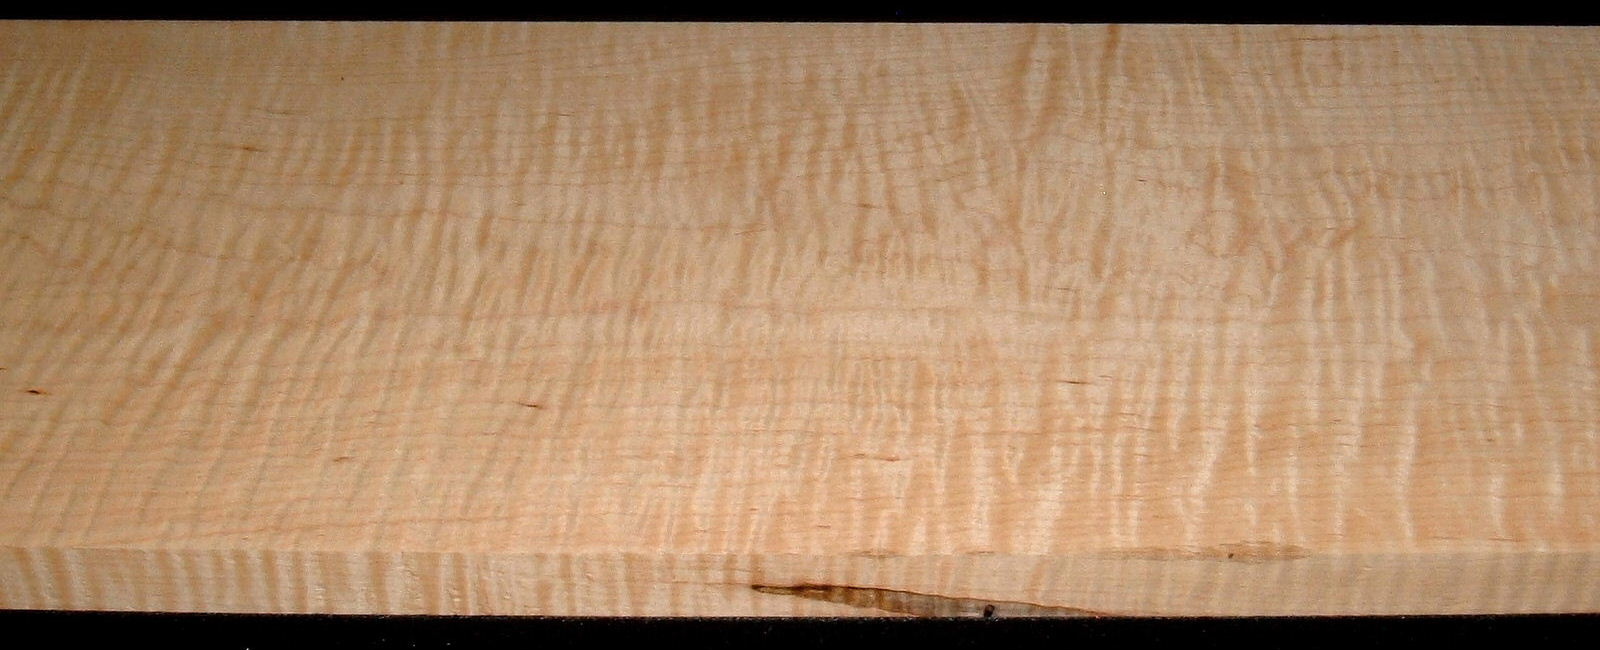 M2007-577,1-1/8x11x45 Curly Tiger Maple